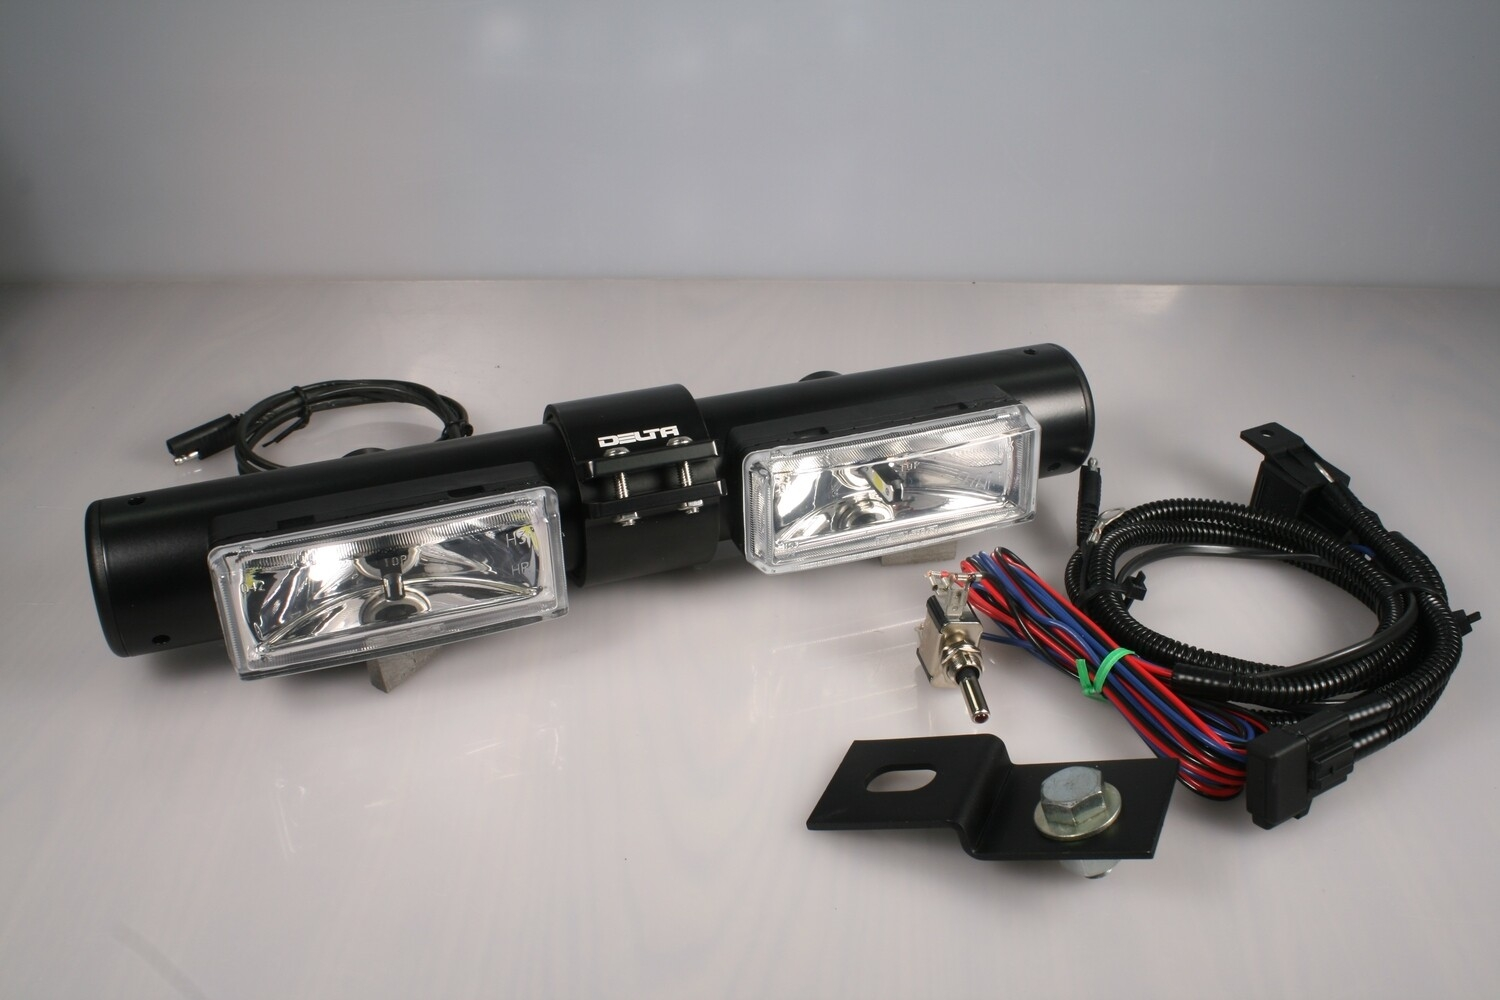 BLACK HI-POWER LED MONO MOUNT LIGHT BAR -LONG RANGE